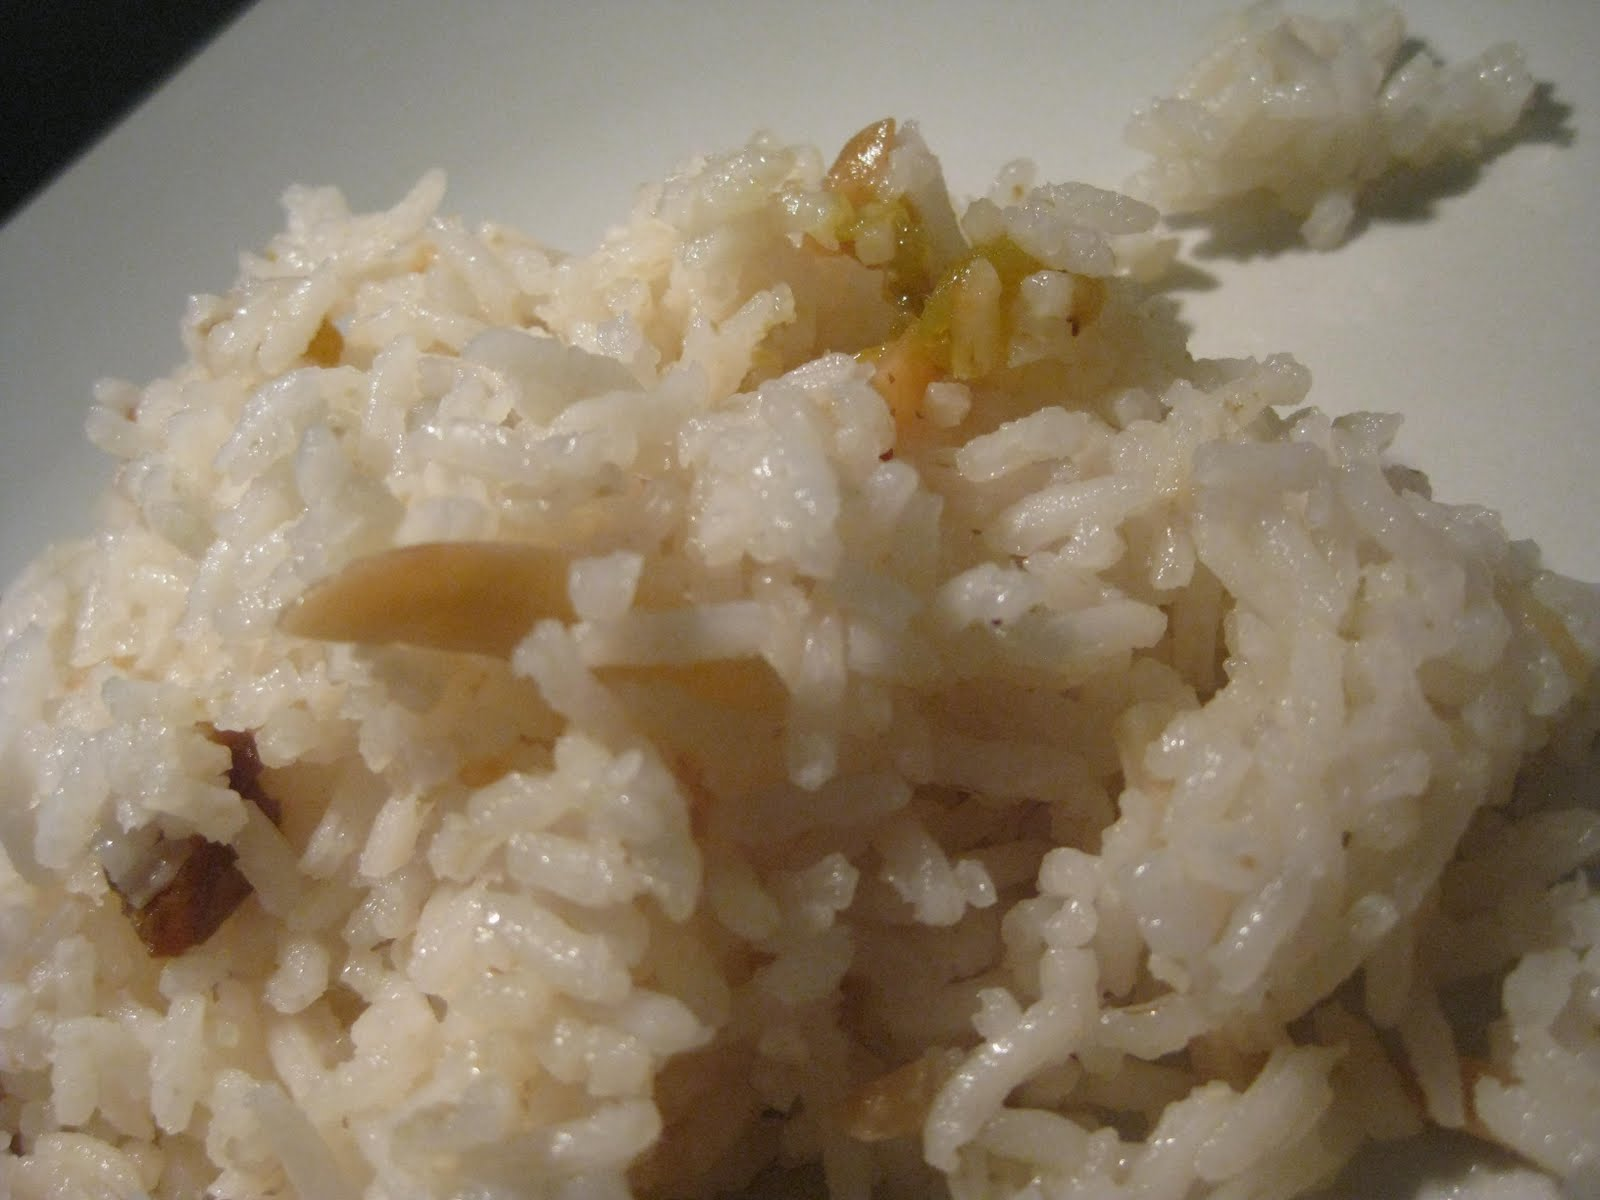 ... The Kitchen Witch: Peshwari Pilau aka Spiced rice with nuts and fruit